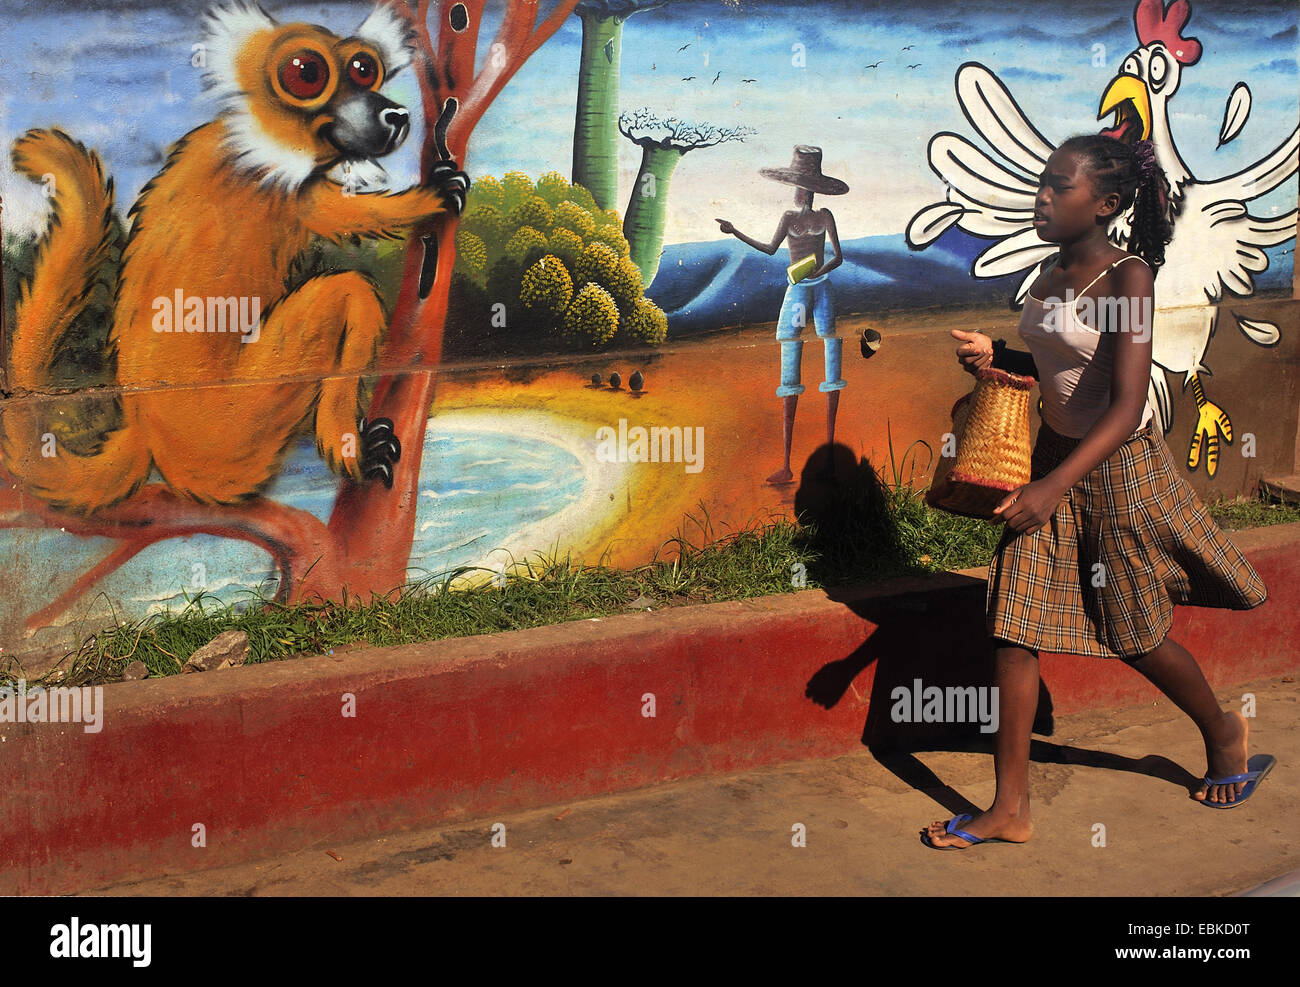 young girl going in front of a painted wall, Madagascar, Nosy Be, Andoany, Hell Ville - Stock Image